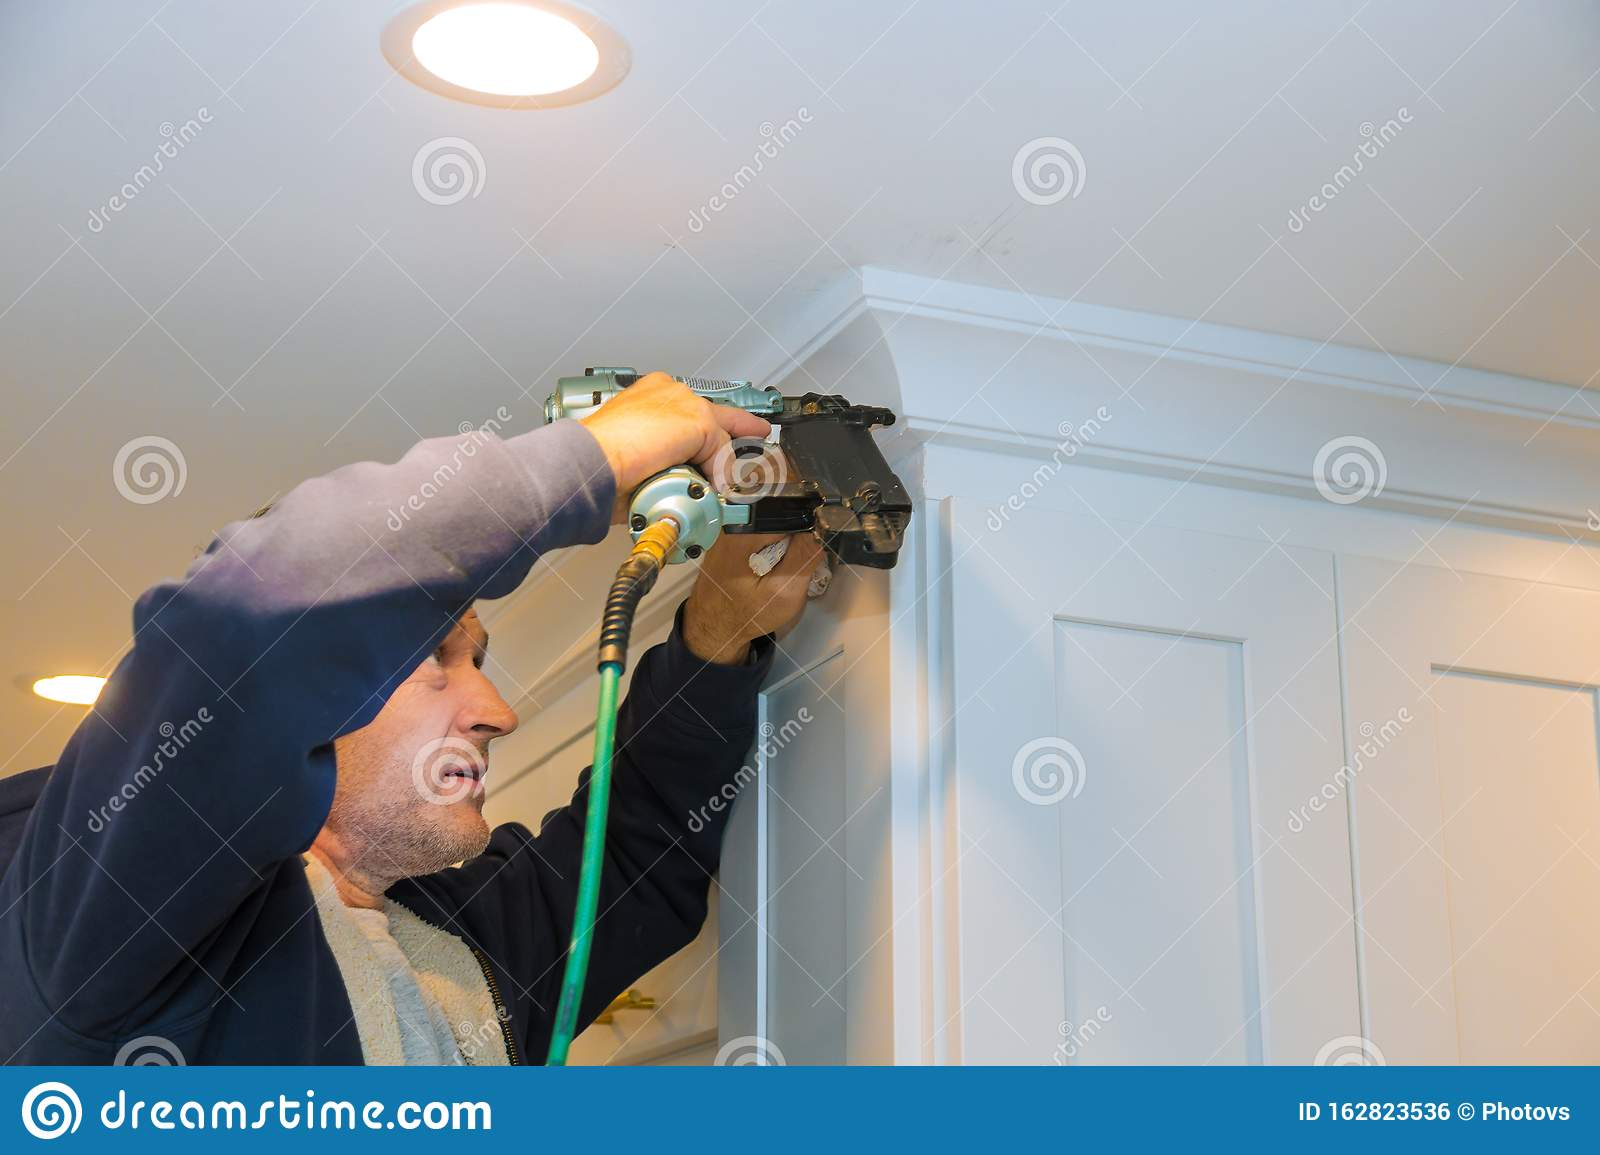 Air Nailer Tool Carpenter Using Nail Gun To Crown Moldings On Kitchen Cabinets With White Cabinets Stock Photo Image Of Interior Gaugefinishnailer 162823536